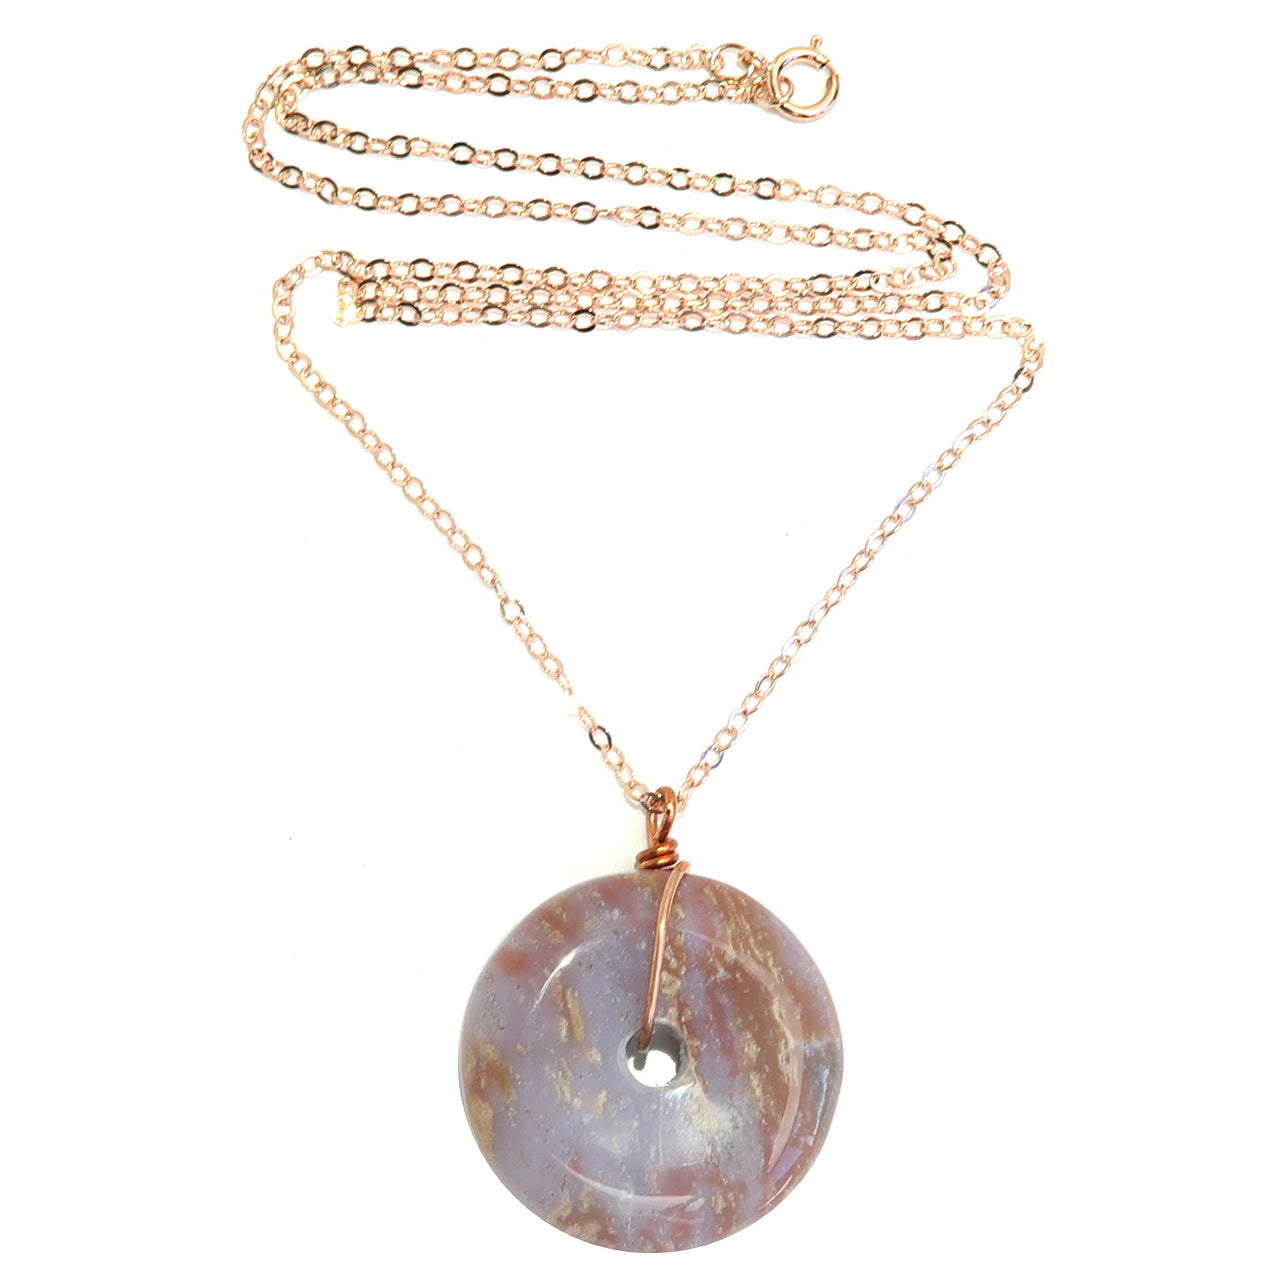 Jasper Picture Necklace Boutique Purple Spotted Donut Stone Amulet 14 Karat Rose Gold B02